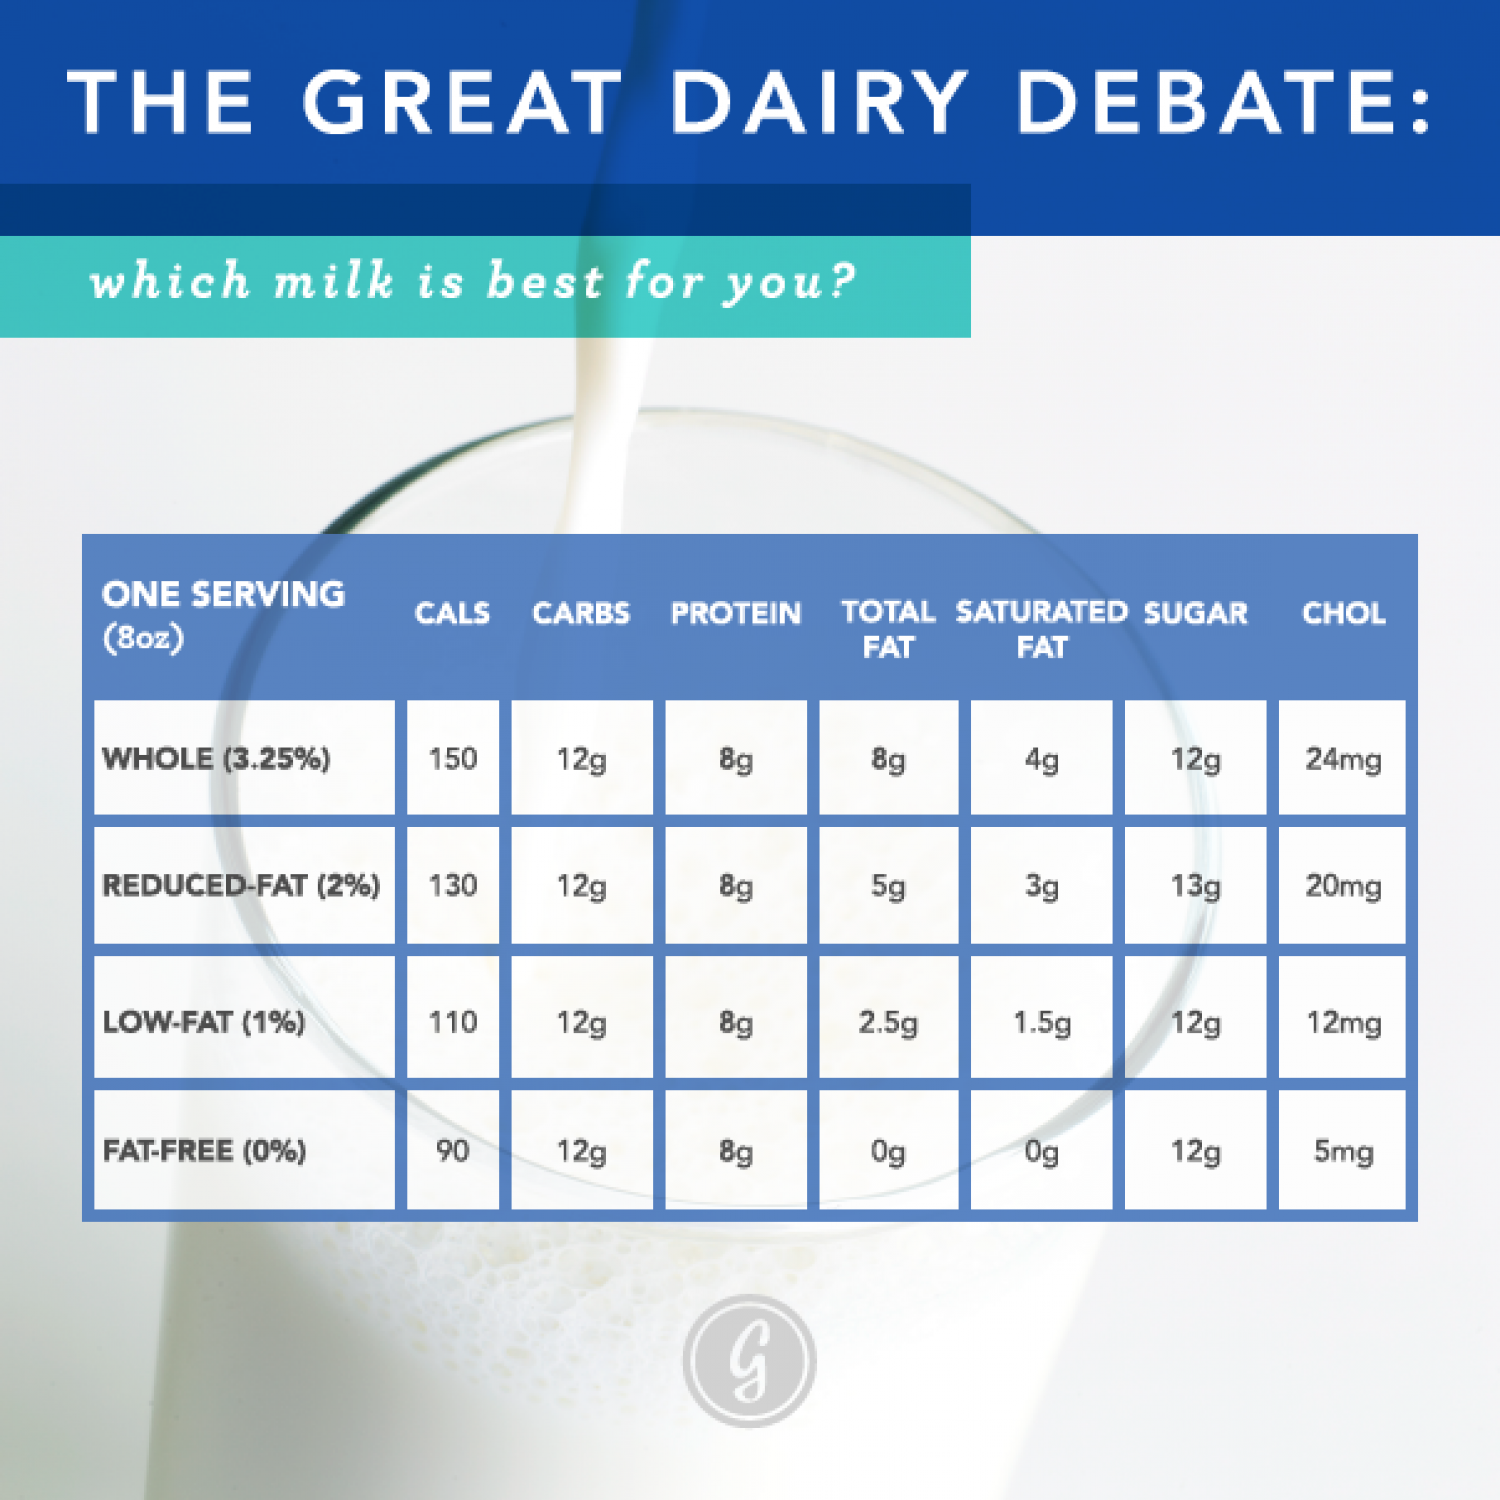 The Great Dairy Debate: Which Milk Is Best For You? Infographic